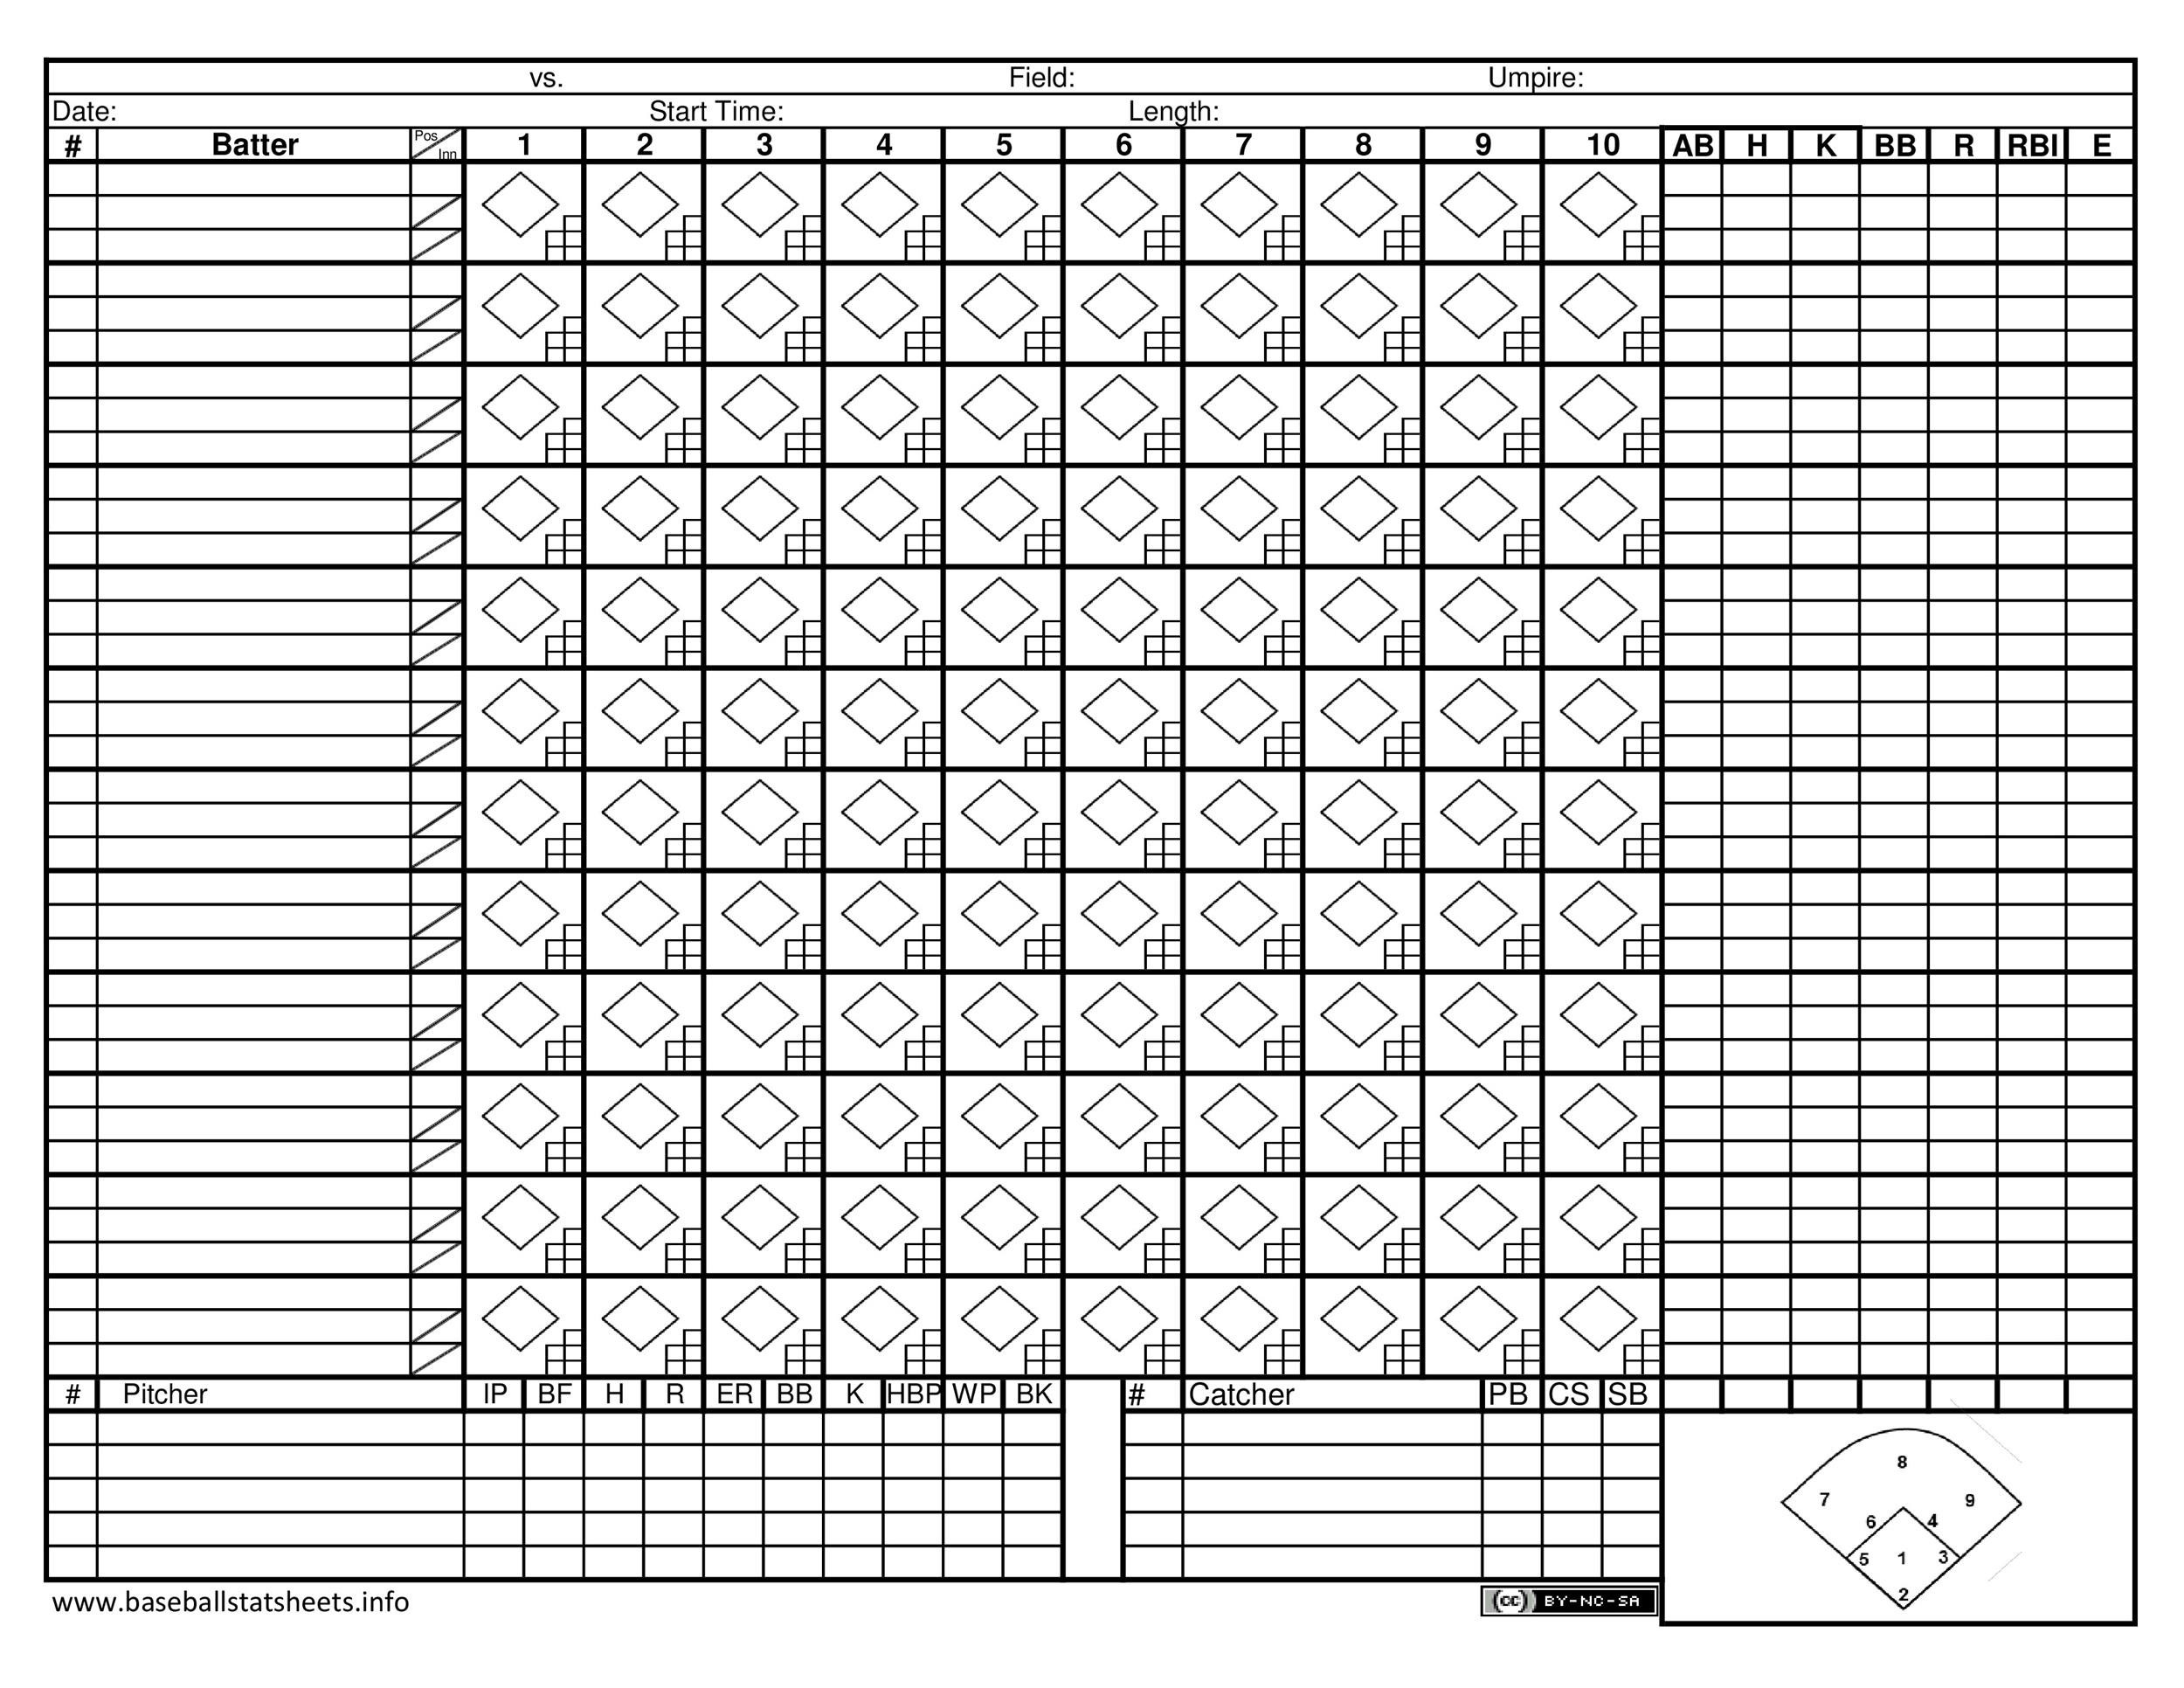 Impeccable image for printable baseball score sheet